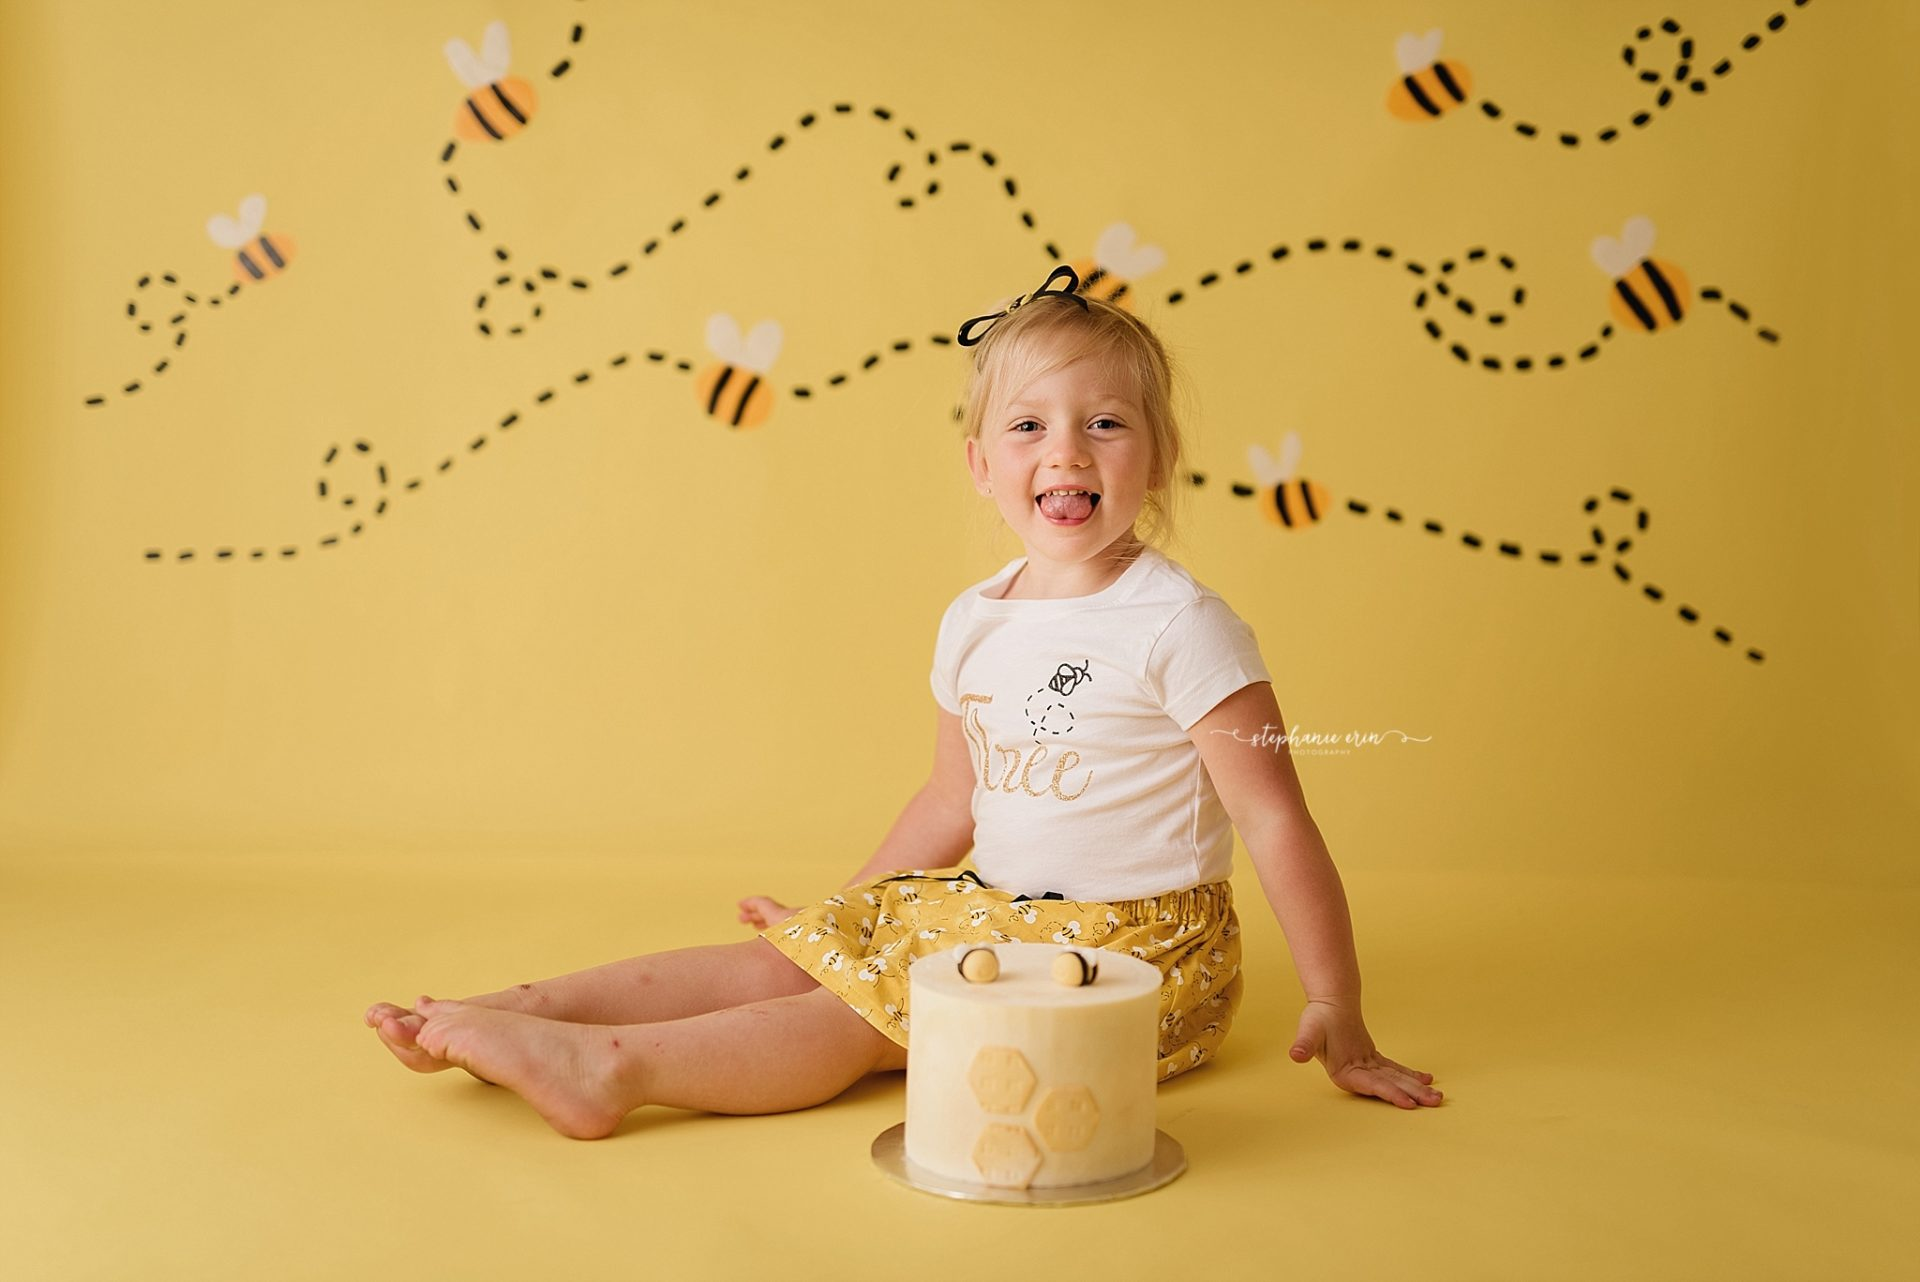 Jayde's Cake Smash Photography Session | St George, Utah Newborn Photographer + Southern Utah Newborn Photography Studio | Stephanie Erin Photography